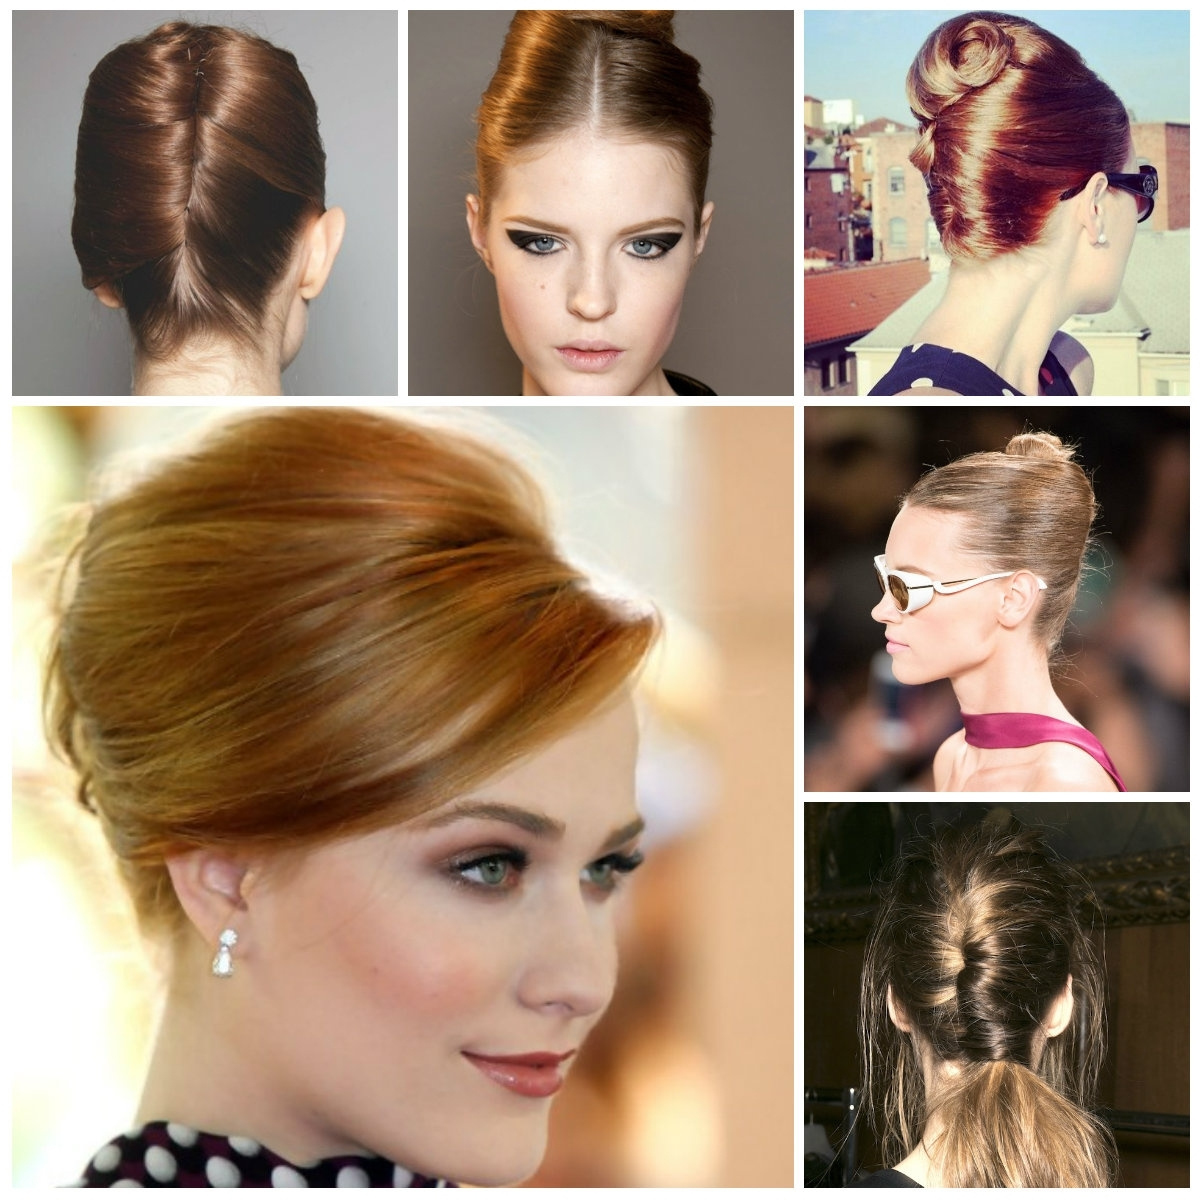 2017 Trendy French Twist Hairstyles | New Haircuts To Try For 2018 With Regard To French Twist Updo Hairstyles For Short Hair (View 2 of 15)